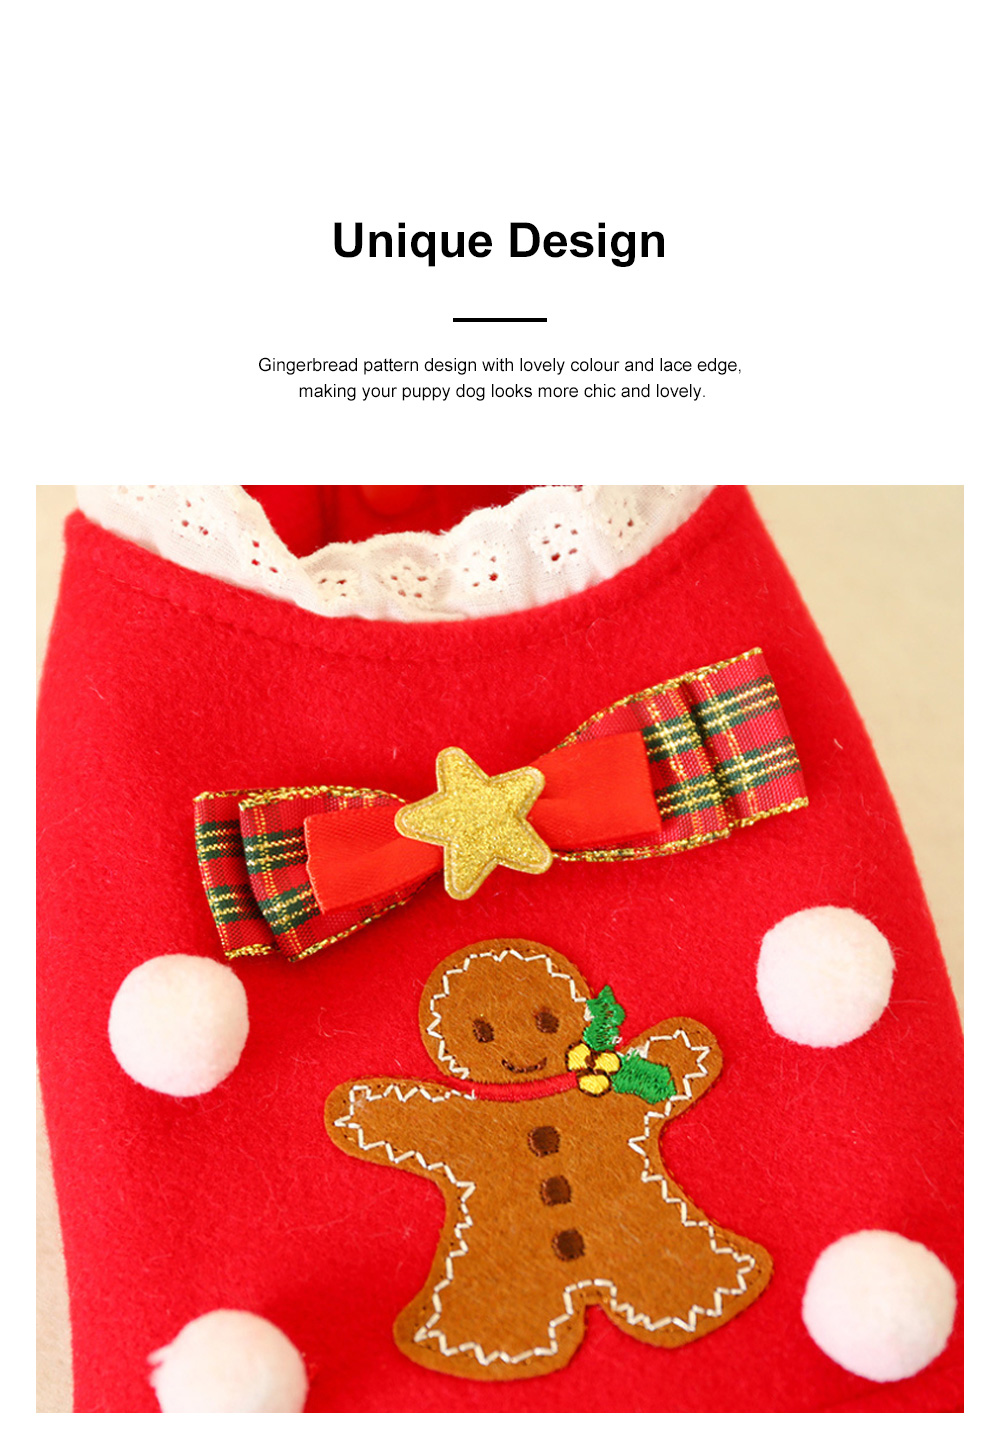 Gingerbread Pattern Red Pet Dress Christmas Decorations Puppy Dog Dress Teddy Bichon Clothing 3